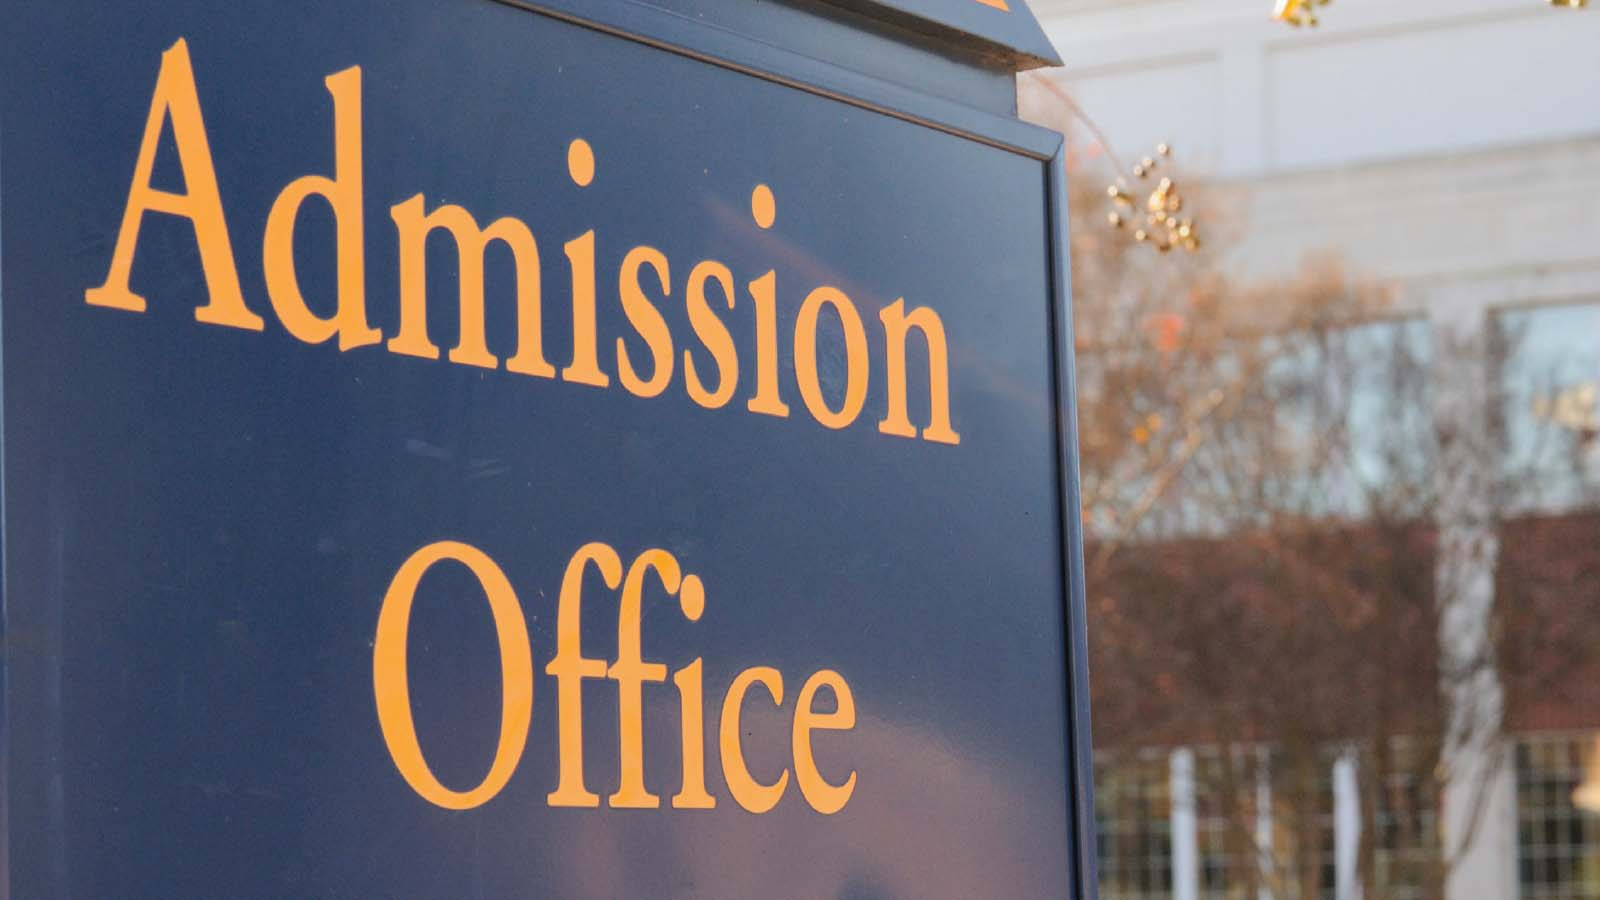 Image result for admissions office